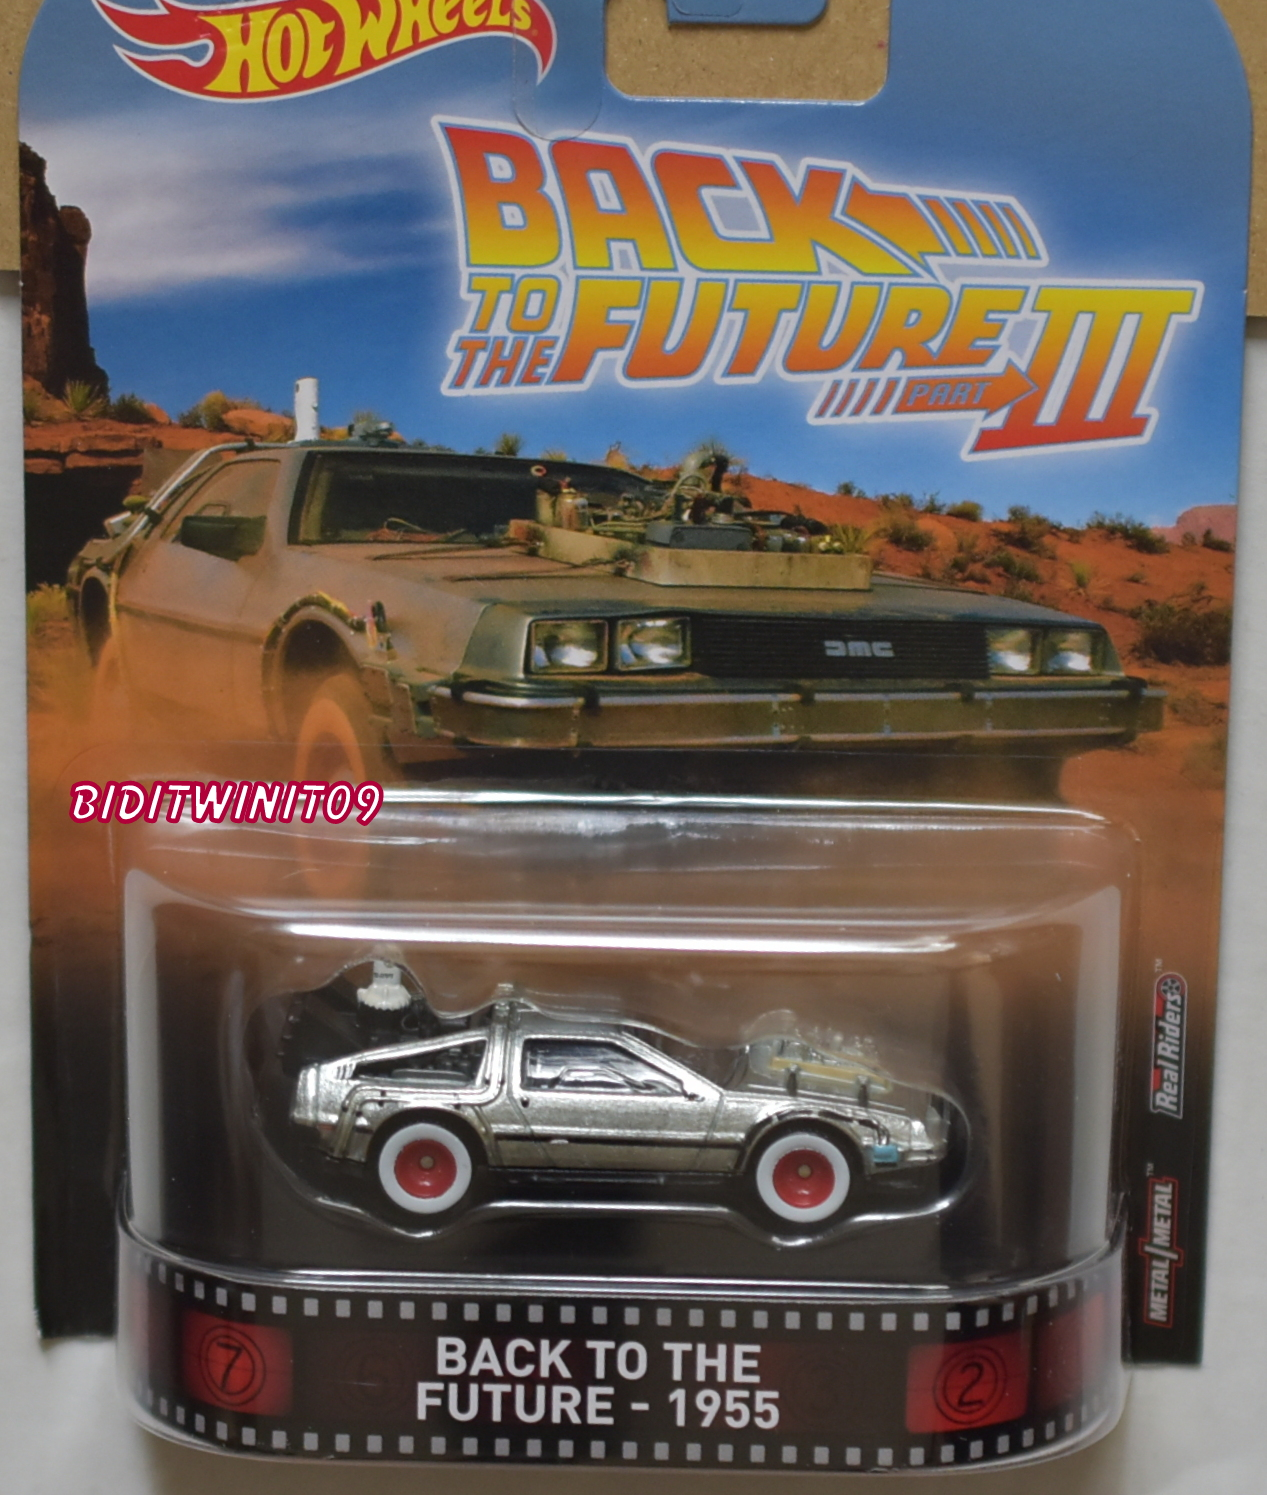 HOT WHEELS 2017 RETRO ENTERTAINMENT BACK TO THE FUTURE - 1955